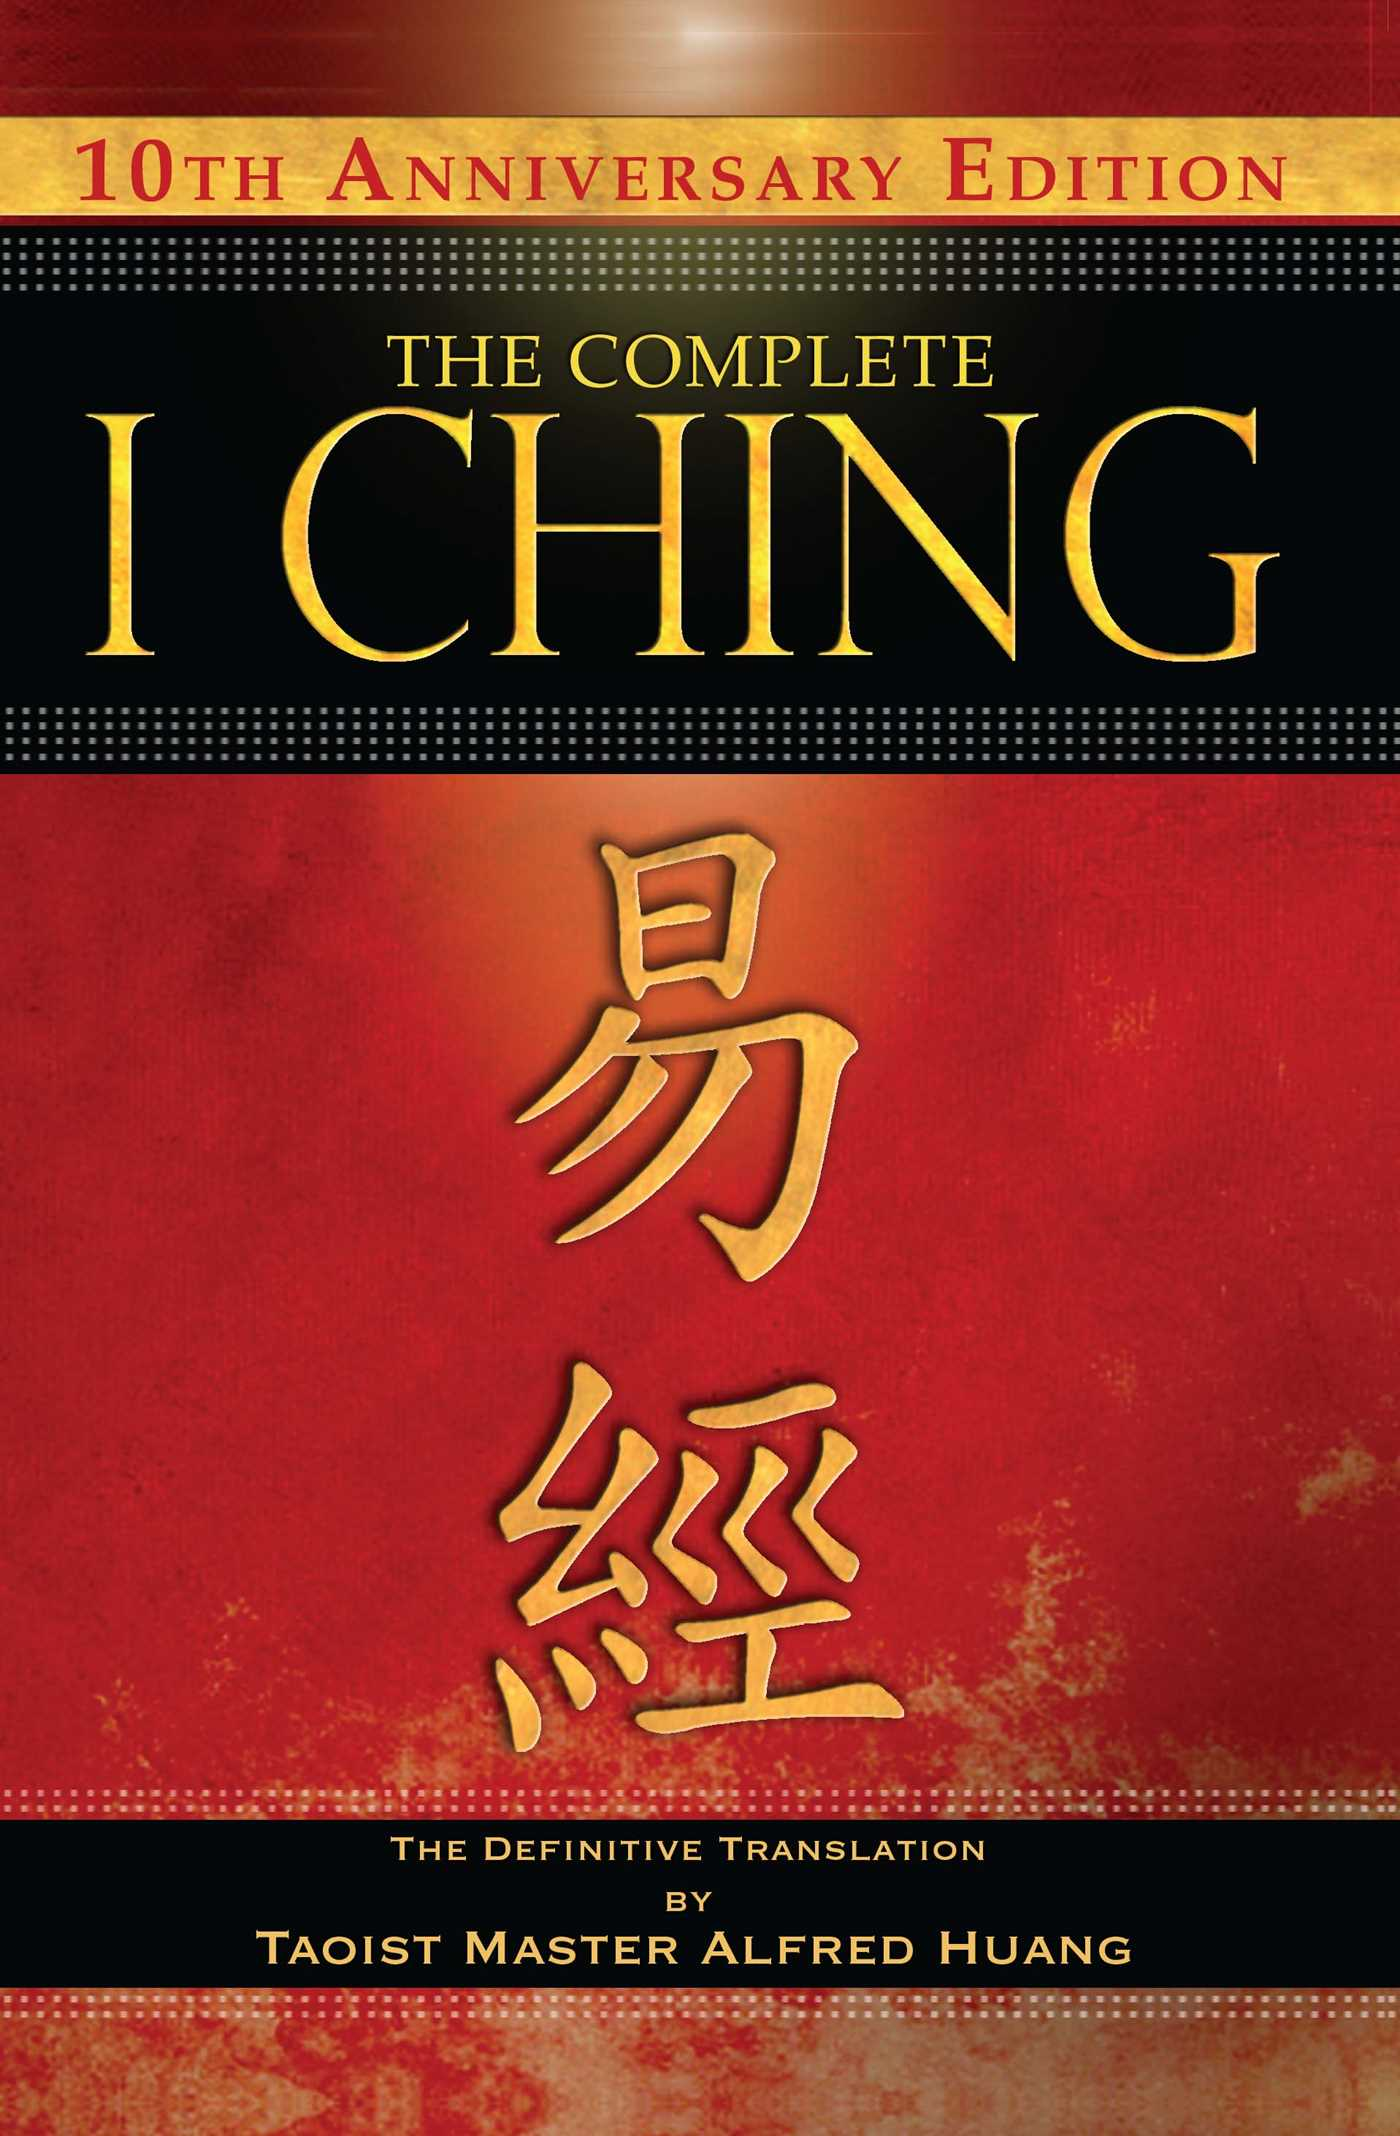 The complete i ching 10th anniversary edition book by taoist product image 1 of 1 the complete i ching 10th anniversary edition 9781594773853 hr fandeluxe Choice Image